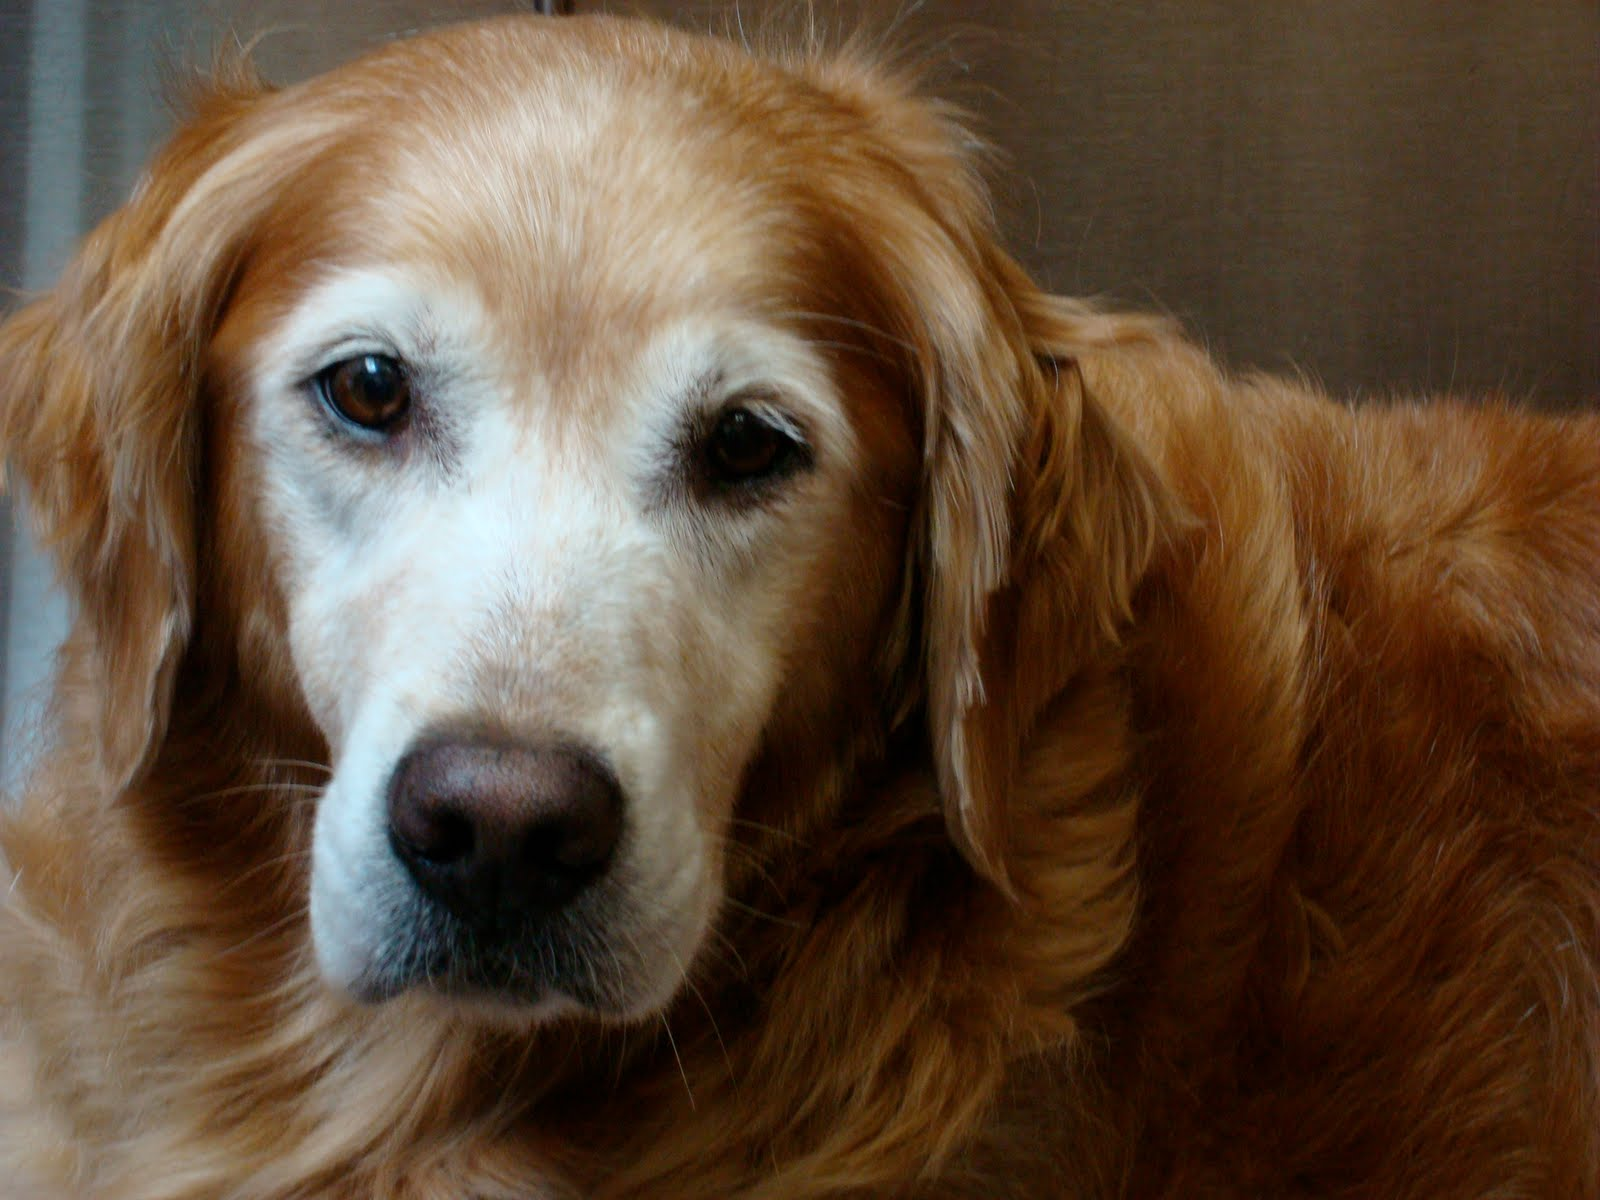 lipoma Archives - Golden Woofs